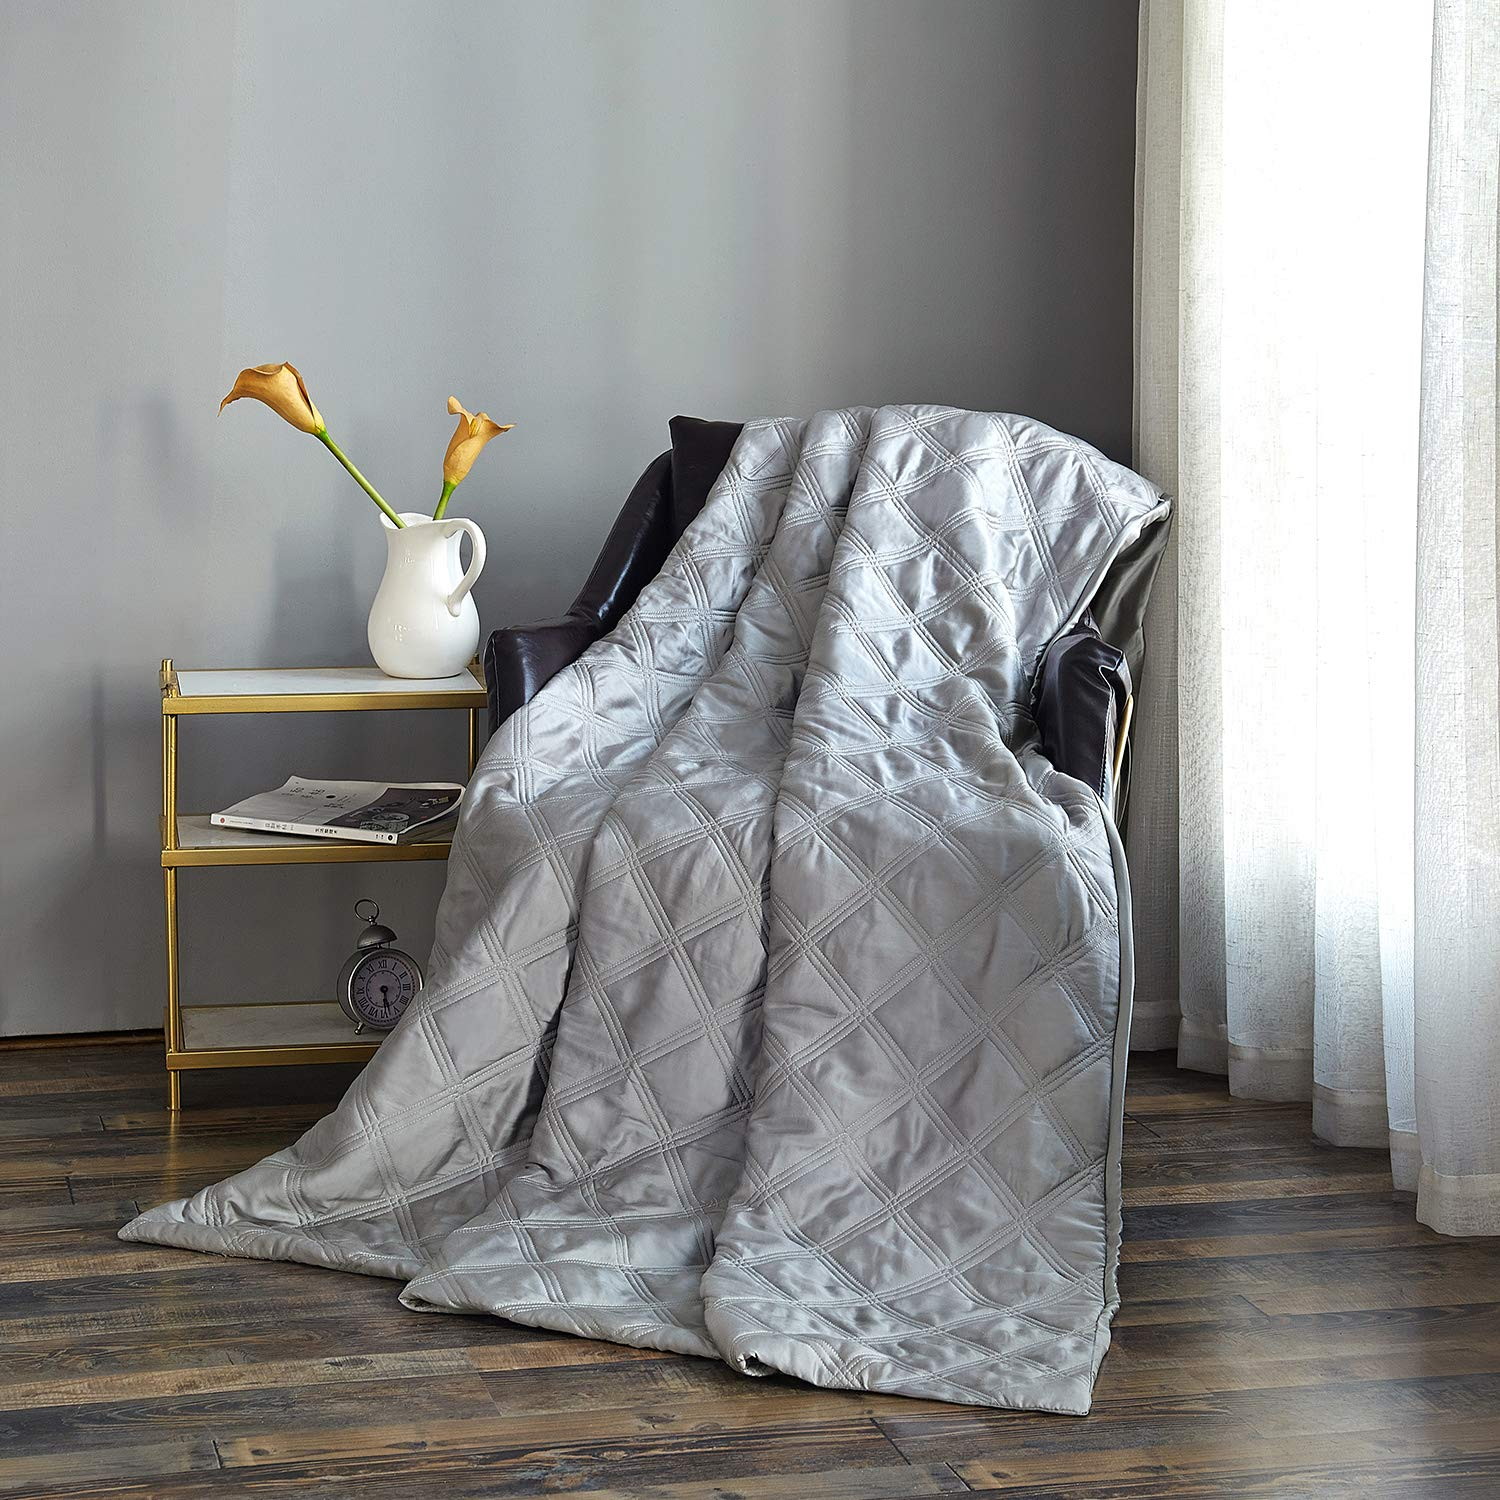 OMYSTYLE Cooling Weighted Blanket Duvet Cover 41x60Inches-100% Tencel Reversible Weighted Blanket Cover with Zipper Closure,8 Ties-Light Grey